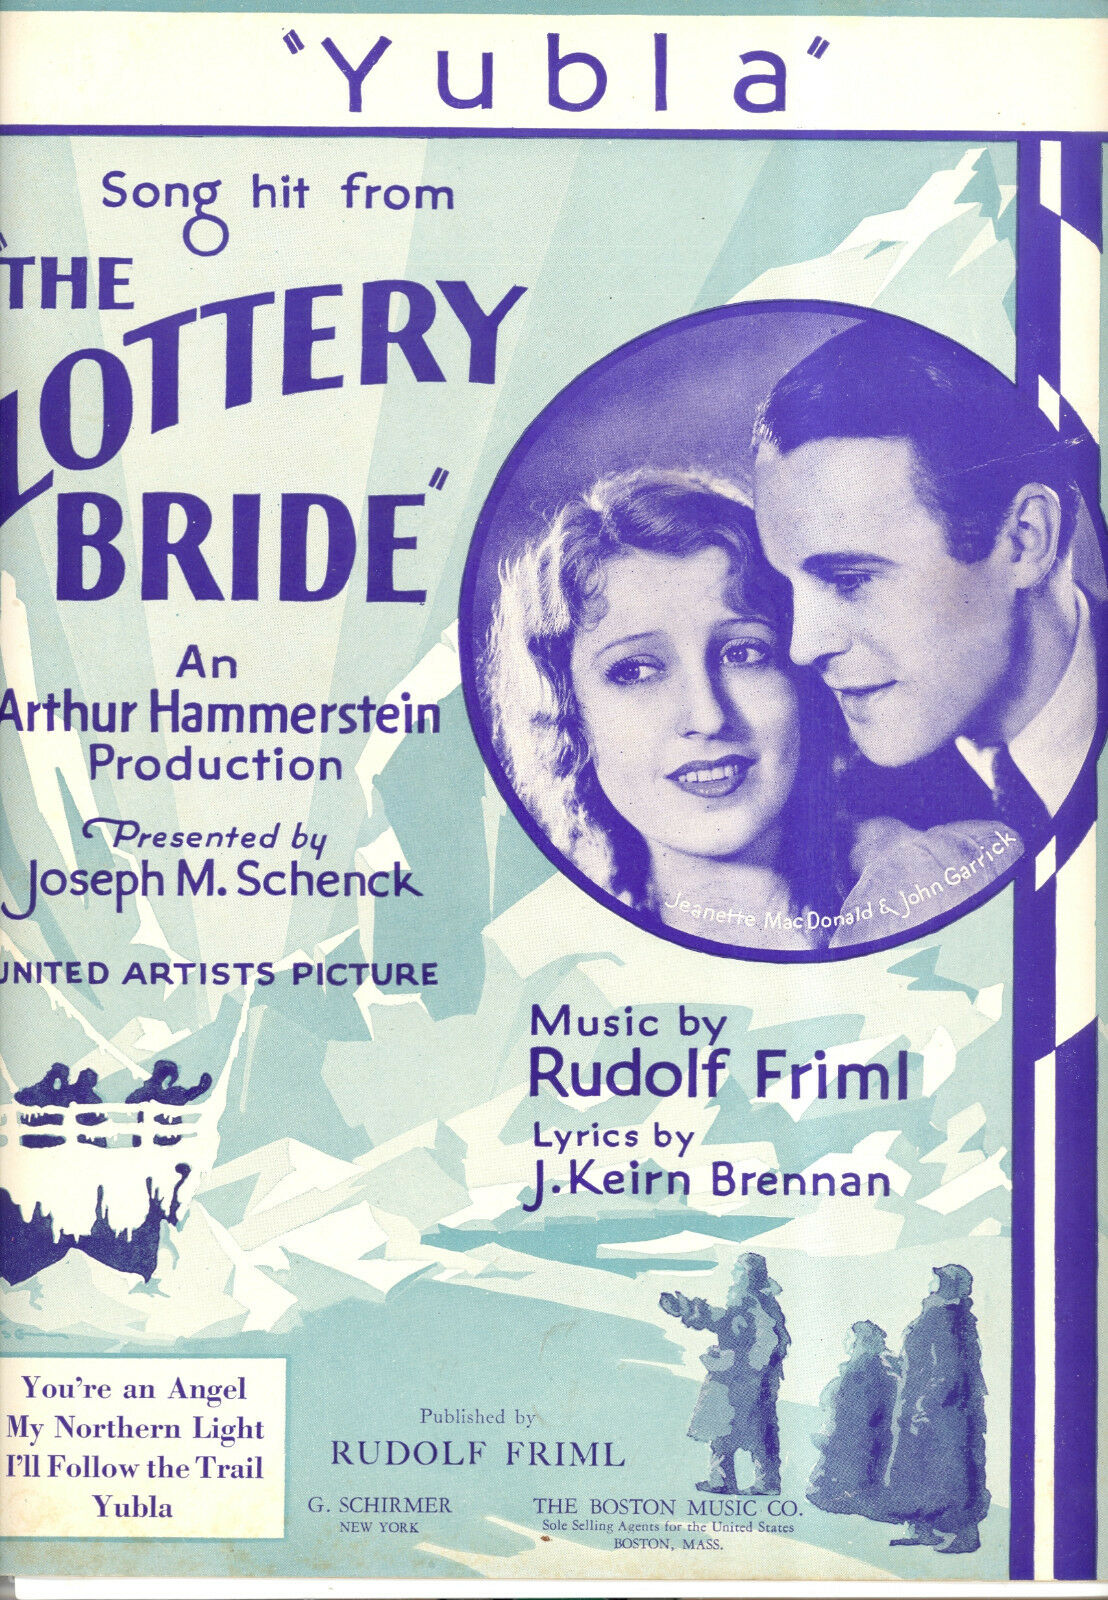 THE LOTTERY BRIDE Sheet Music